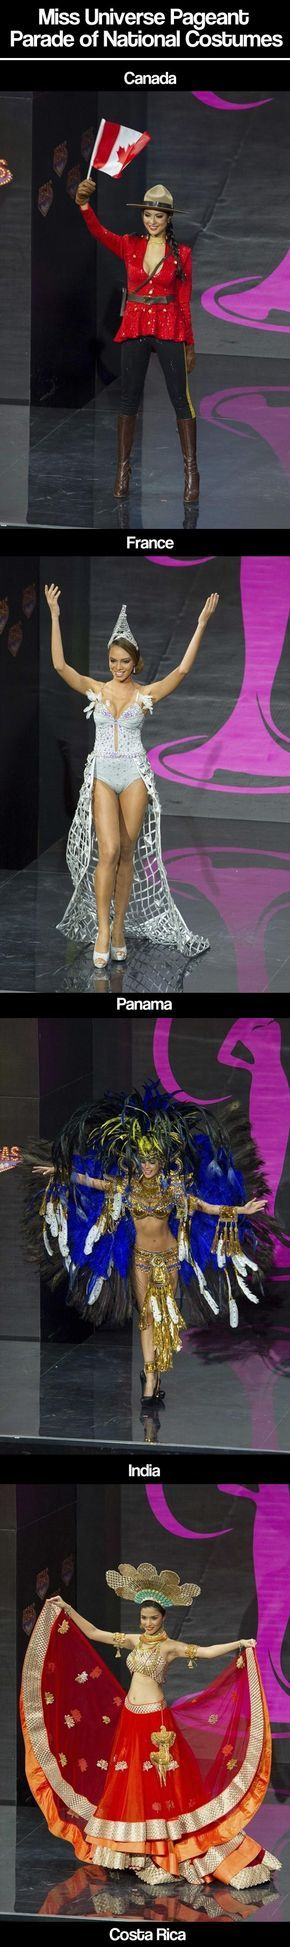 Miss Universe Parade of National Costumes…America chose a Transformer.  WHY?????